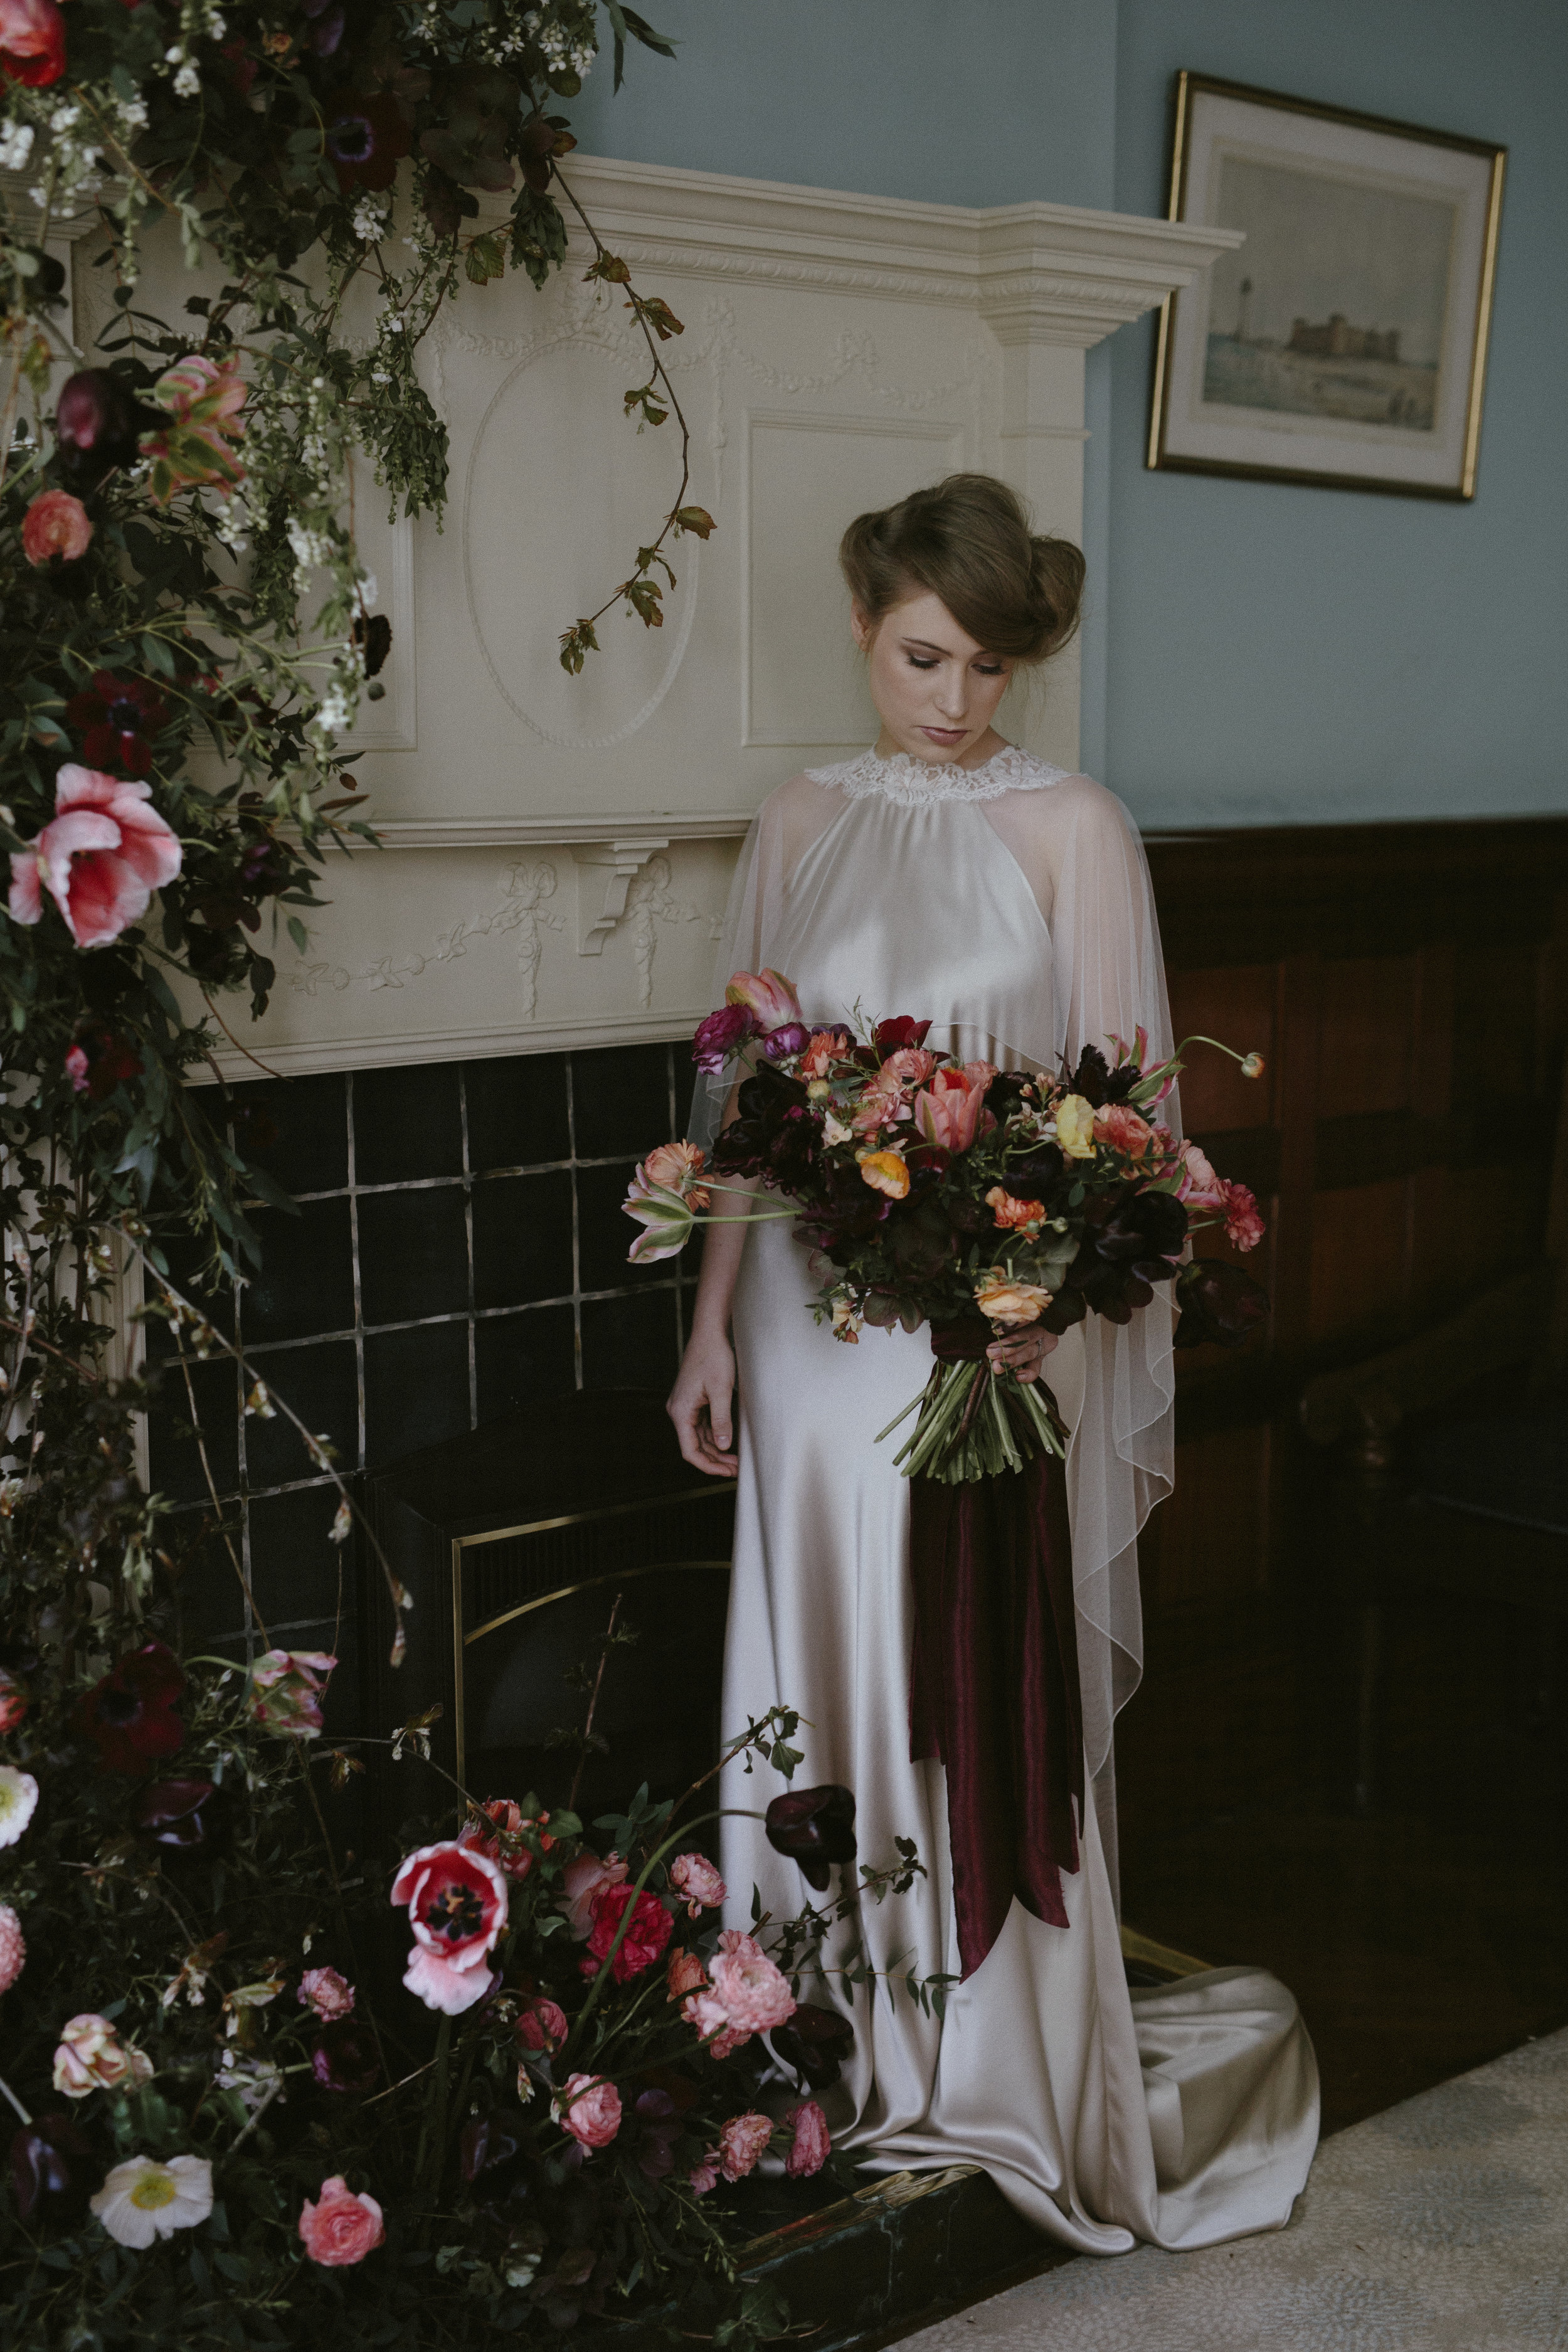 Agnes-and-bee-Kate-Beaumont-wedding-dresses-Ruth-Atkinson-16.jpg